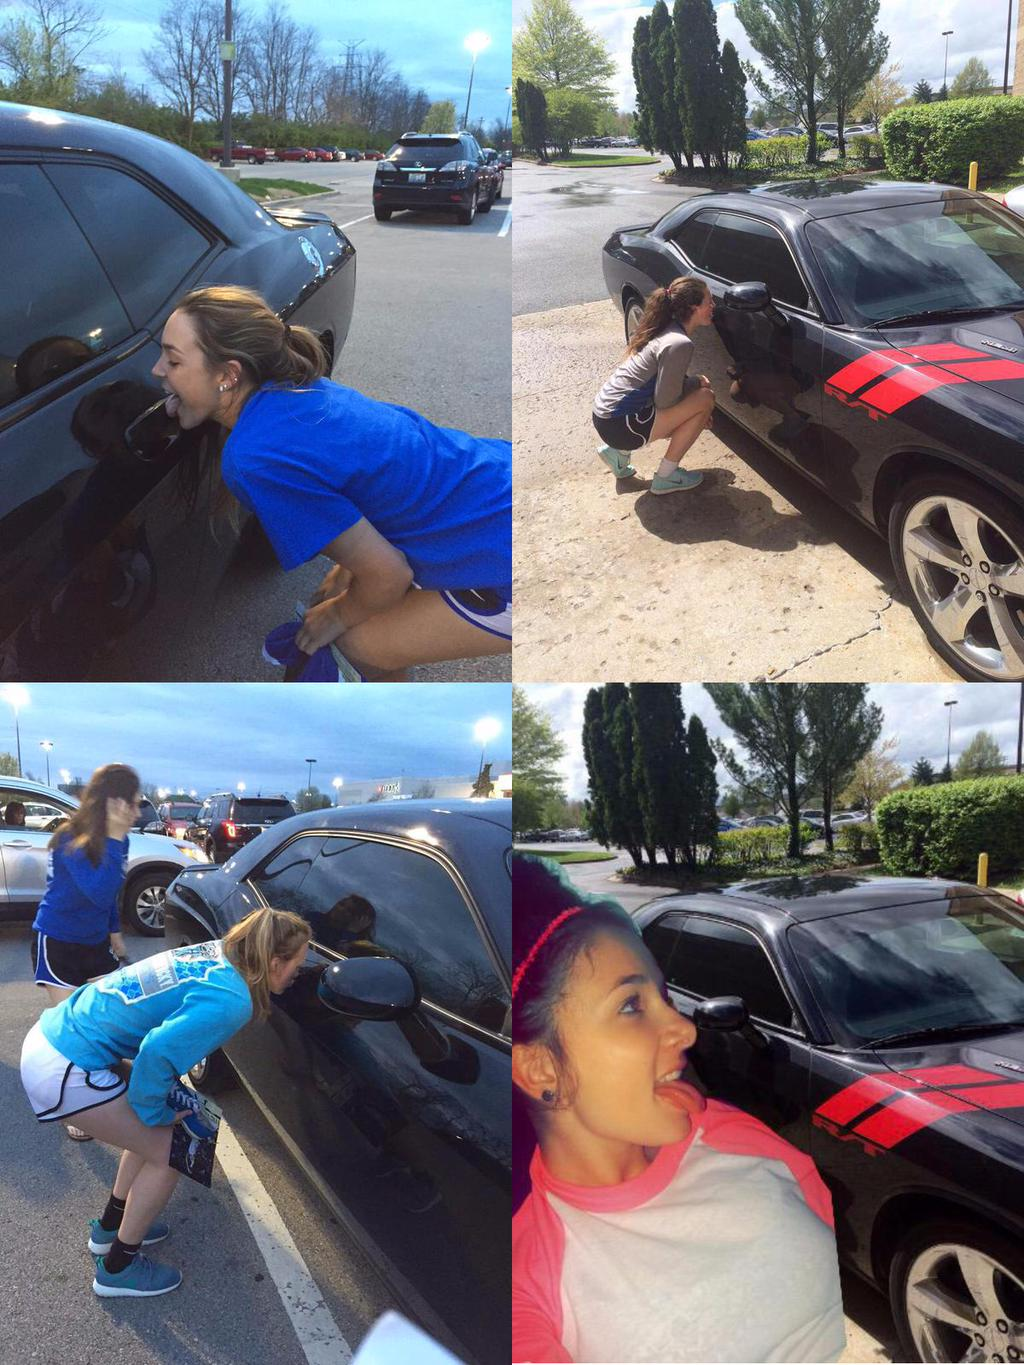 Kentucky Fans are now Licking Cars - Cardinal Sports Zone